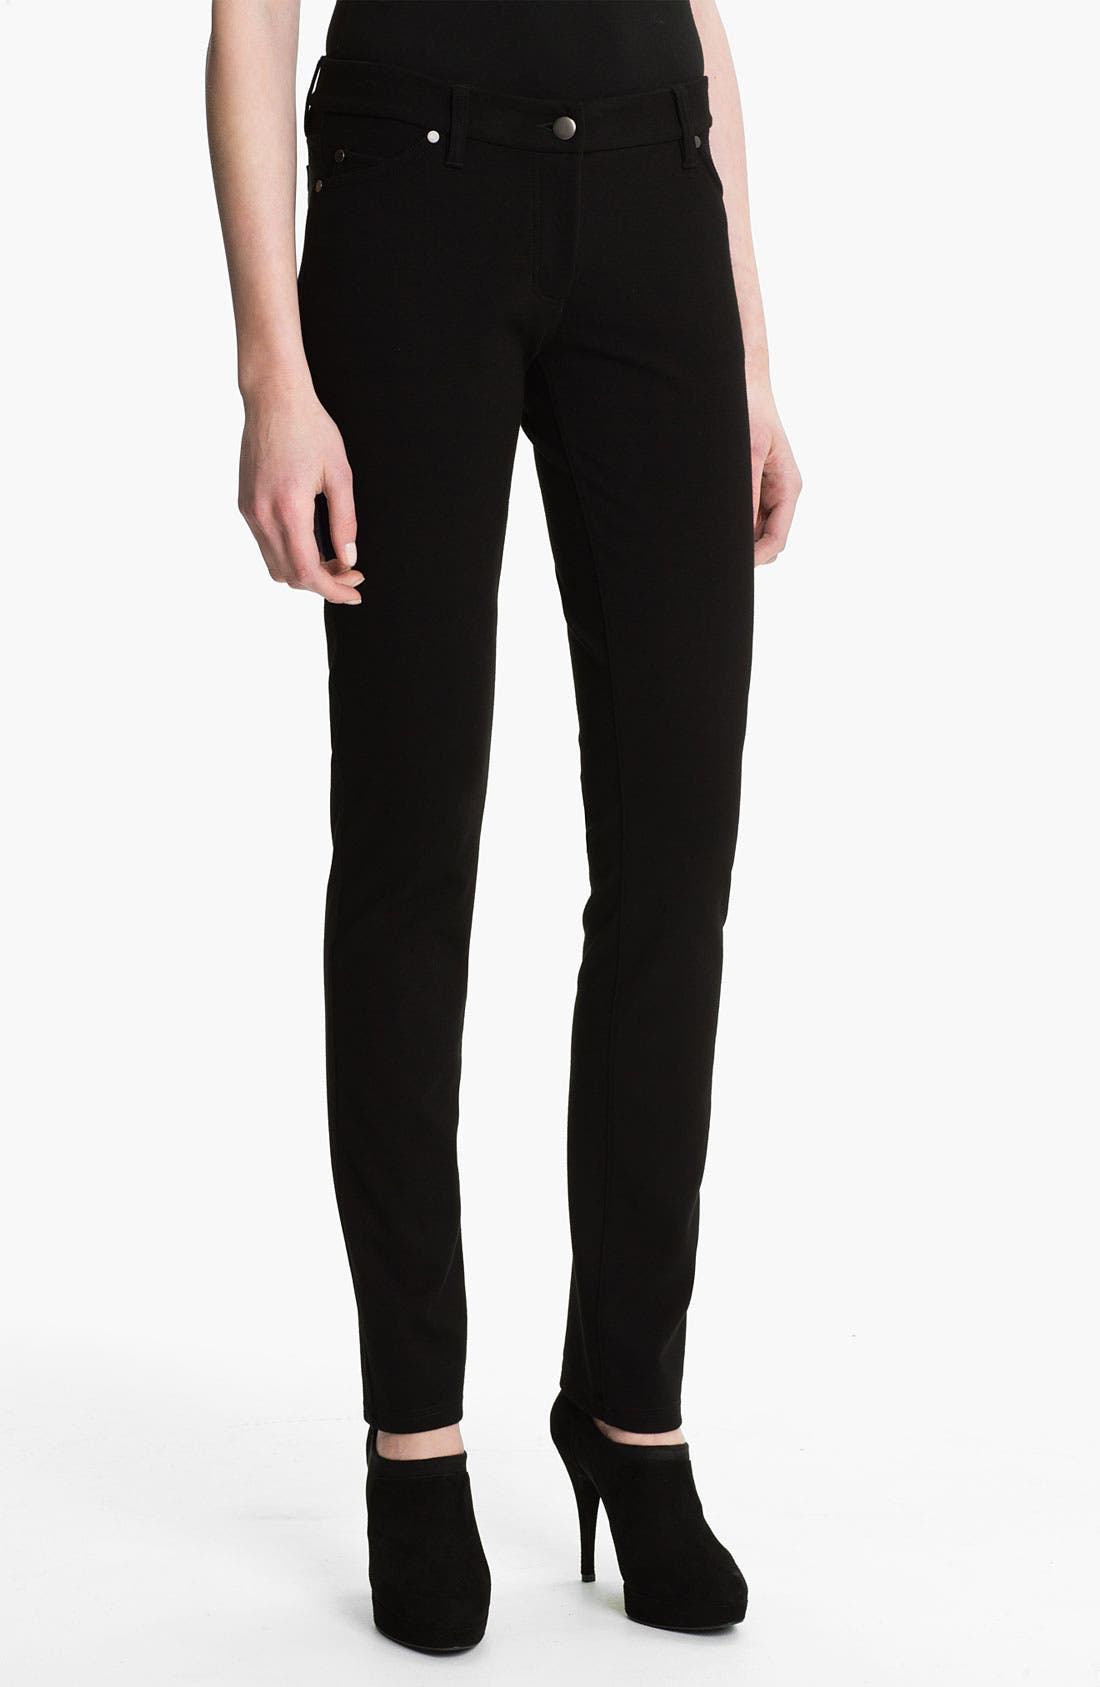 Main Image - Eileen Fisher 'Rock Star' Stretch Ponte Jeans (Regular & Petite)